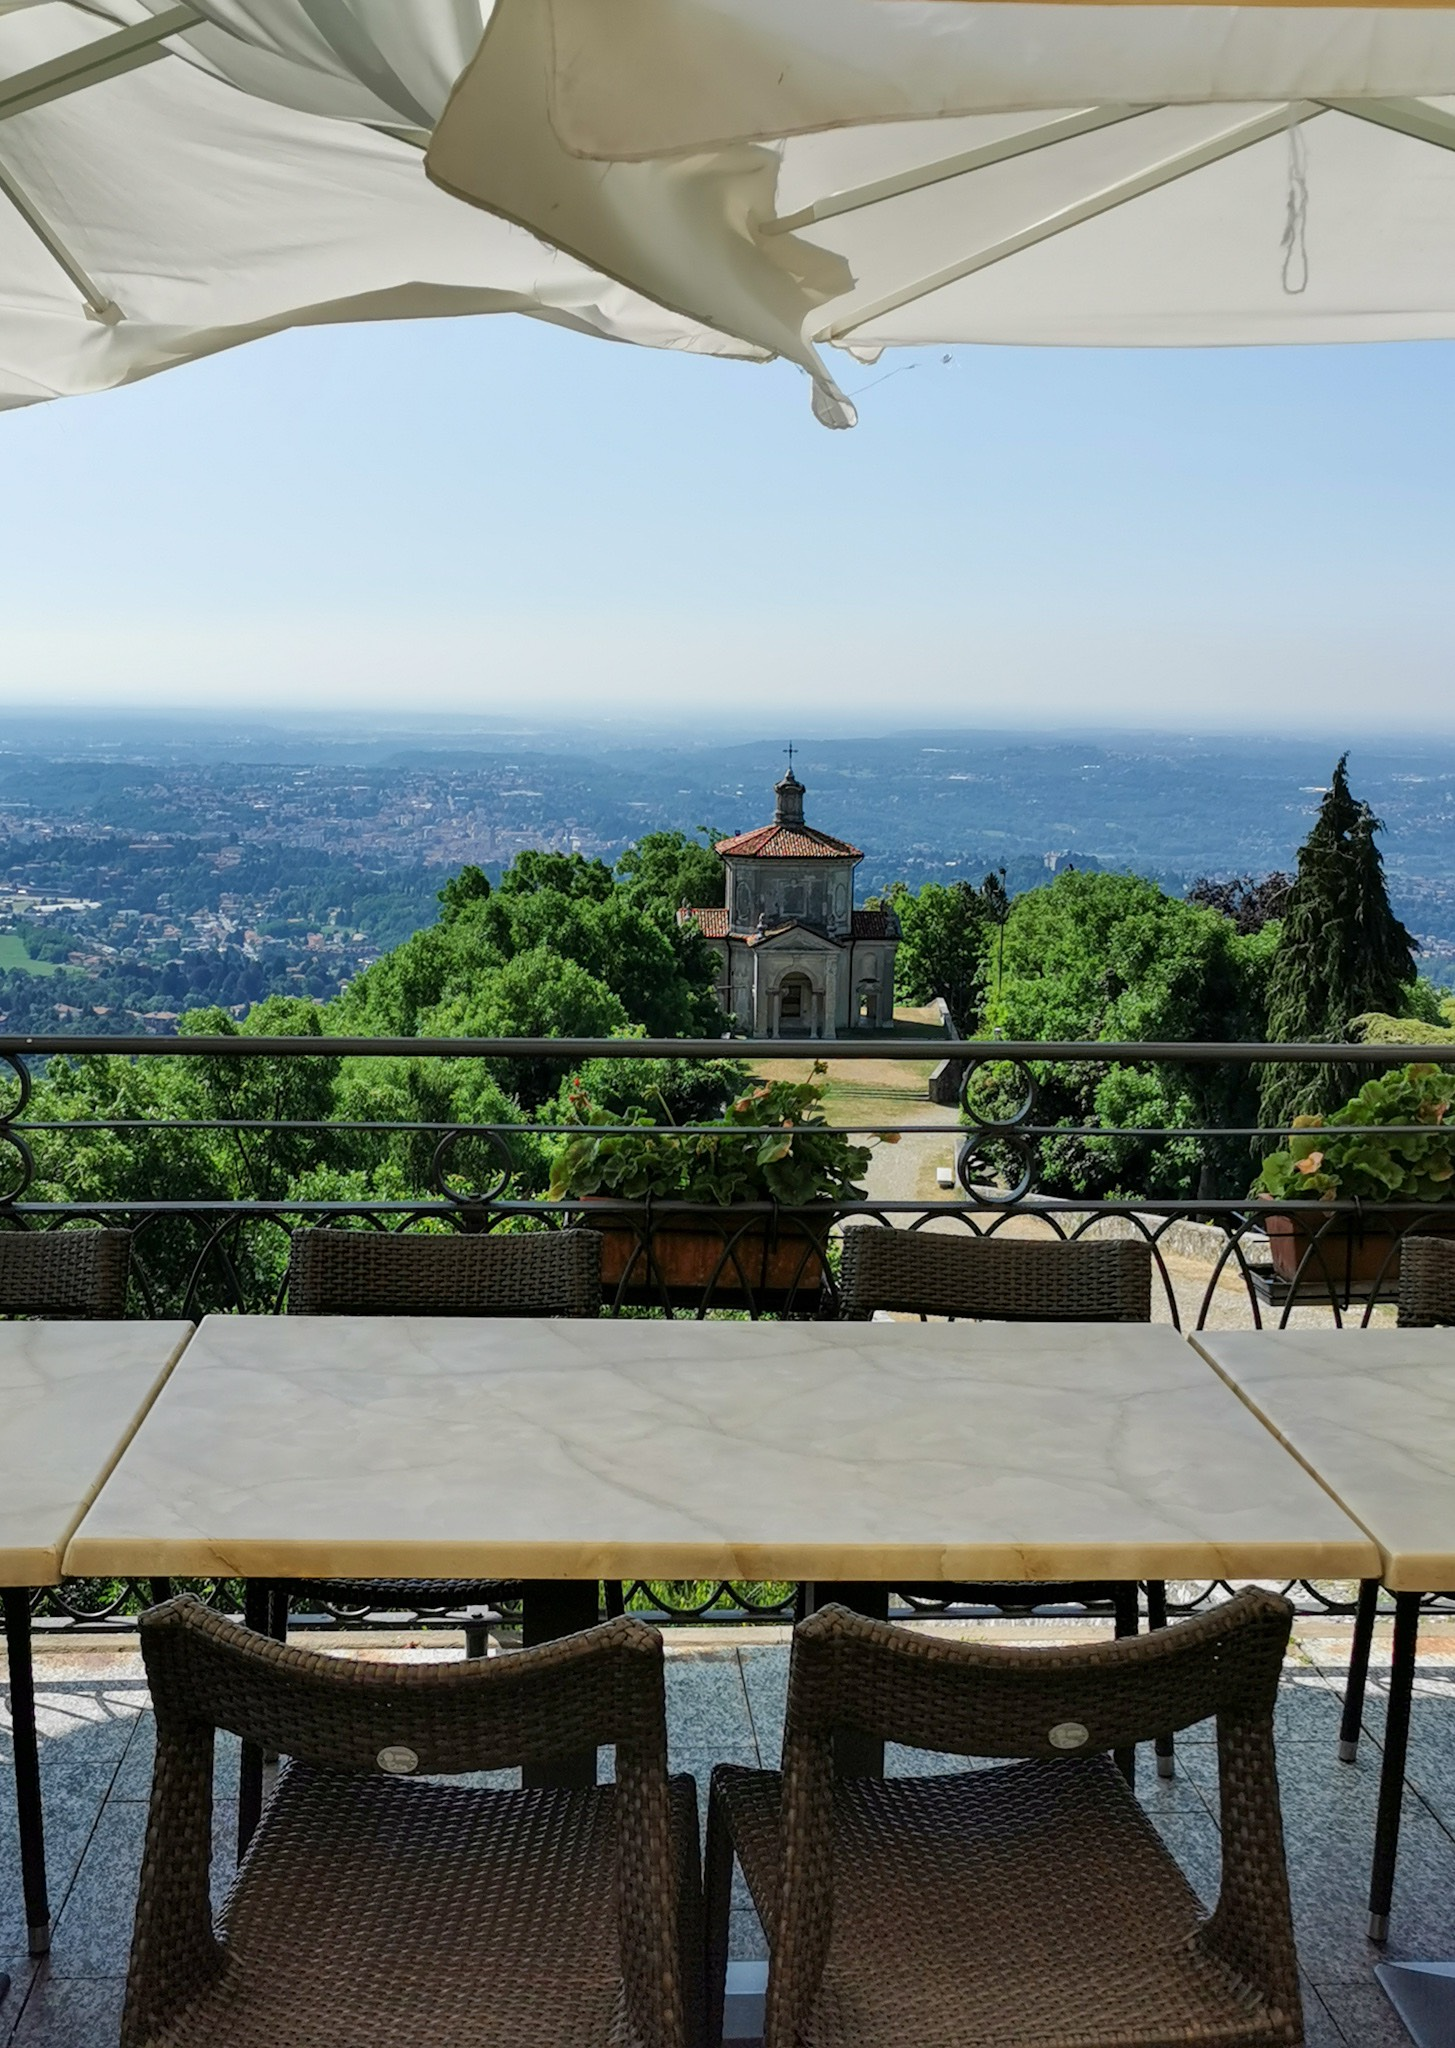 The view from Montorfano café in Santa Maria del Monte near Varese